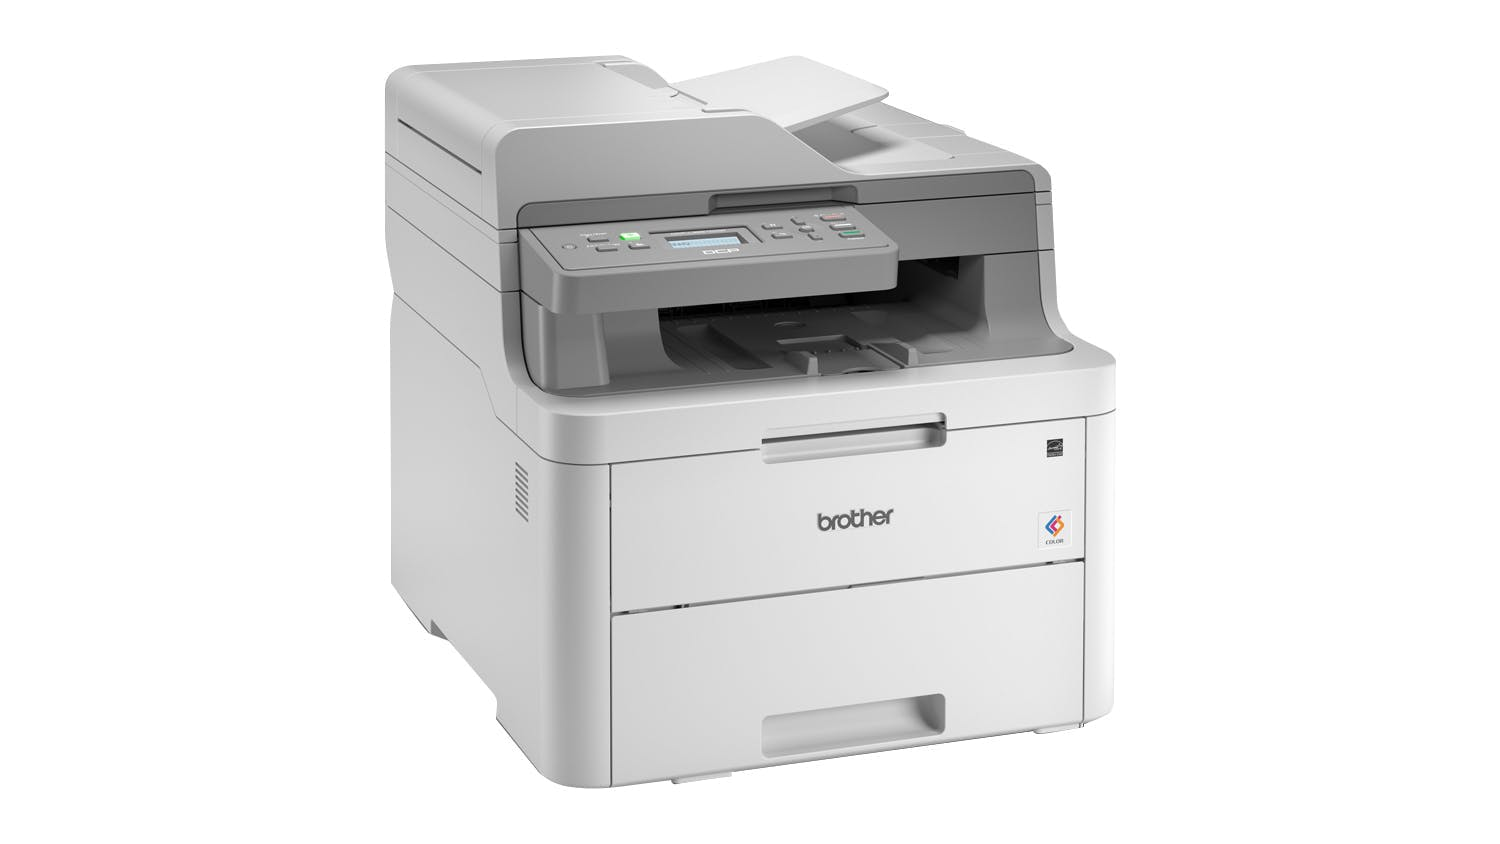 Brother DCPL3551CDW Laser All-in-One Printer